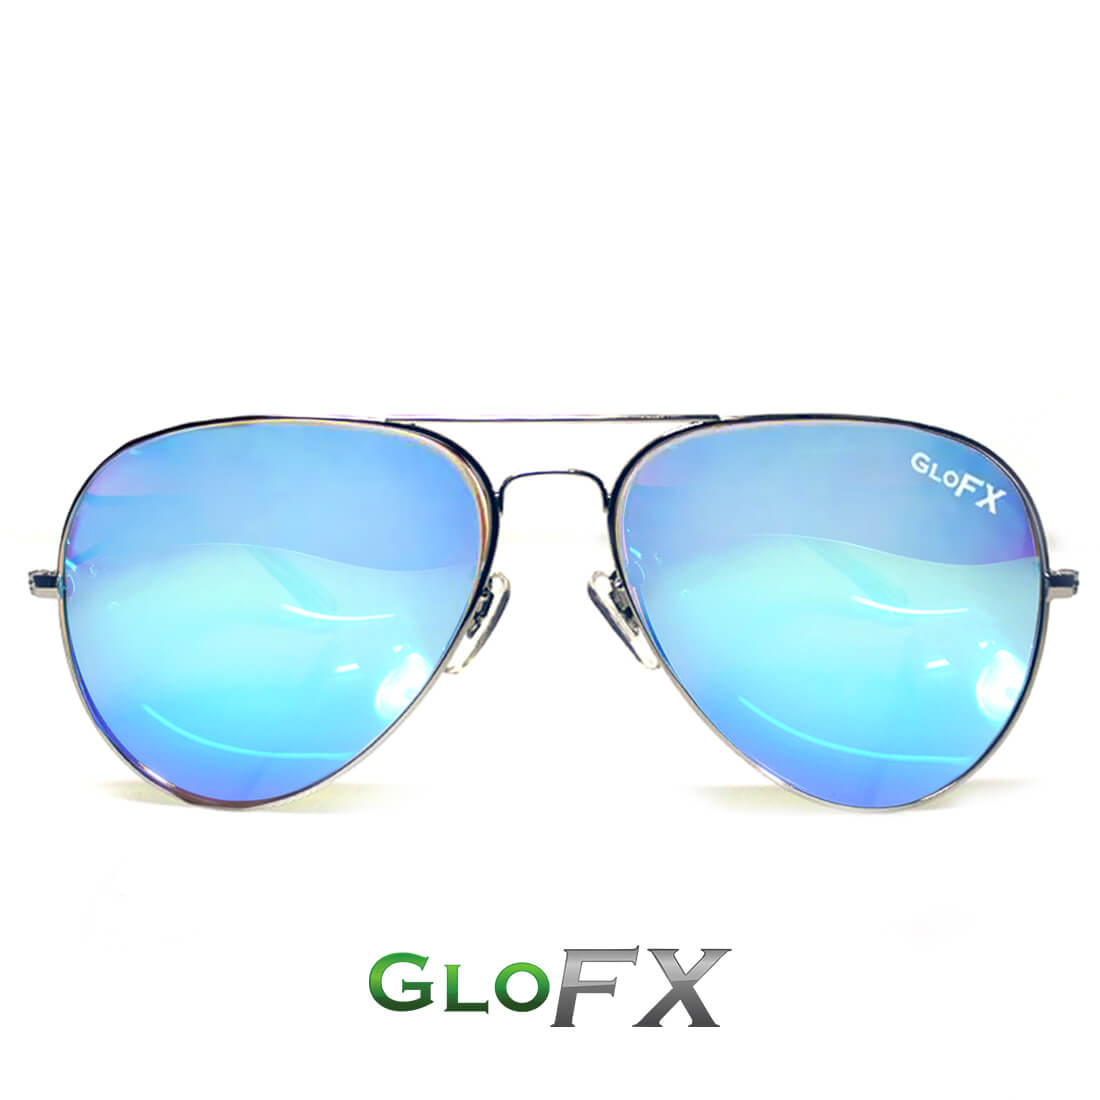 GloFX_GloFX_Metal_Pilot_Aviator_Style_Sunglasses_Featured_Images_1